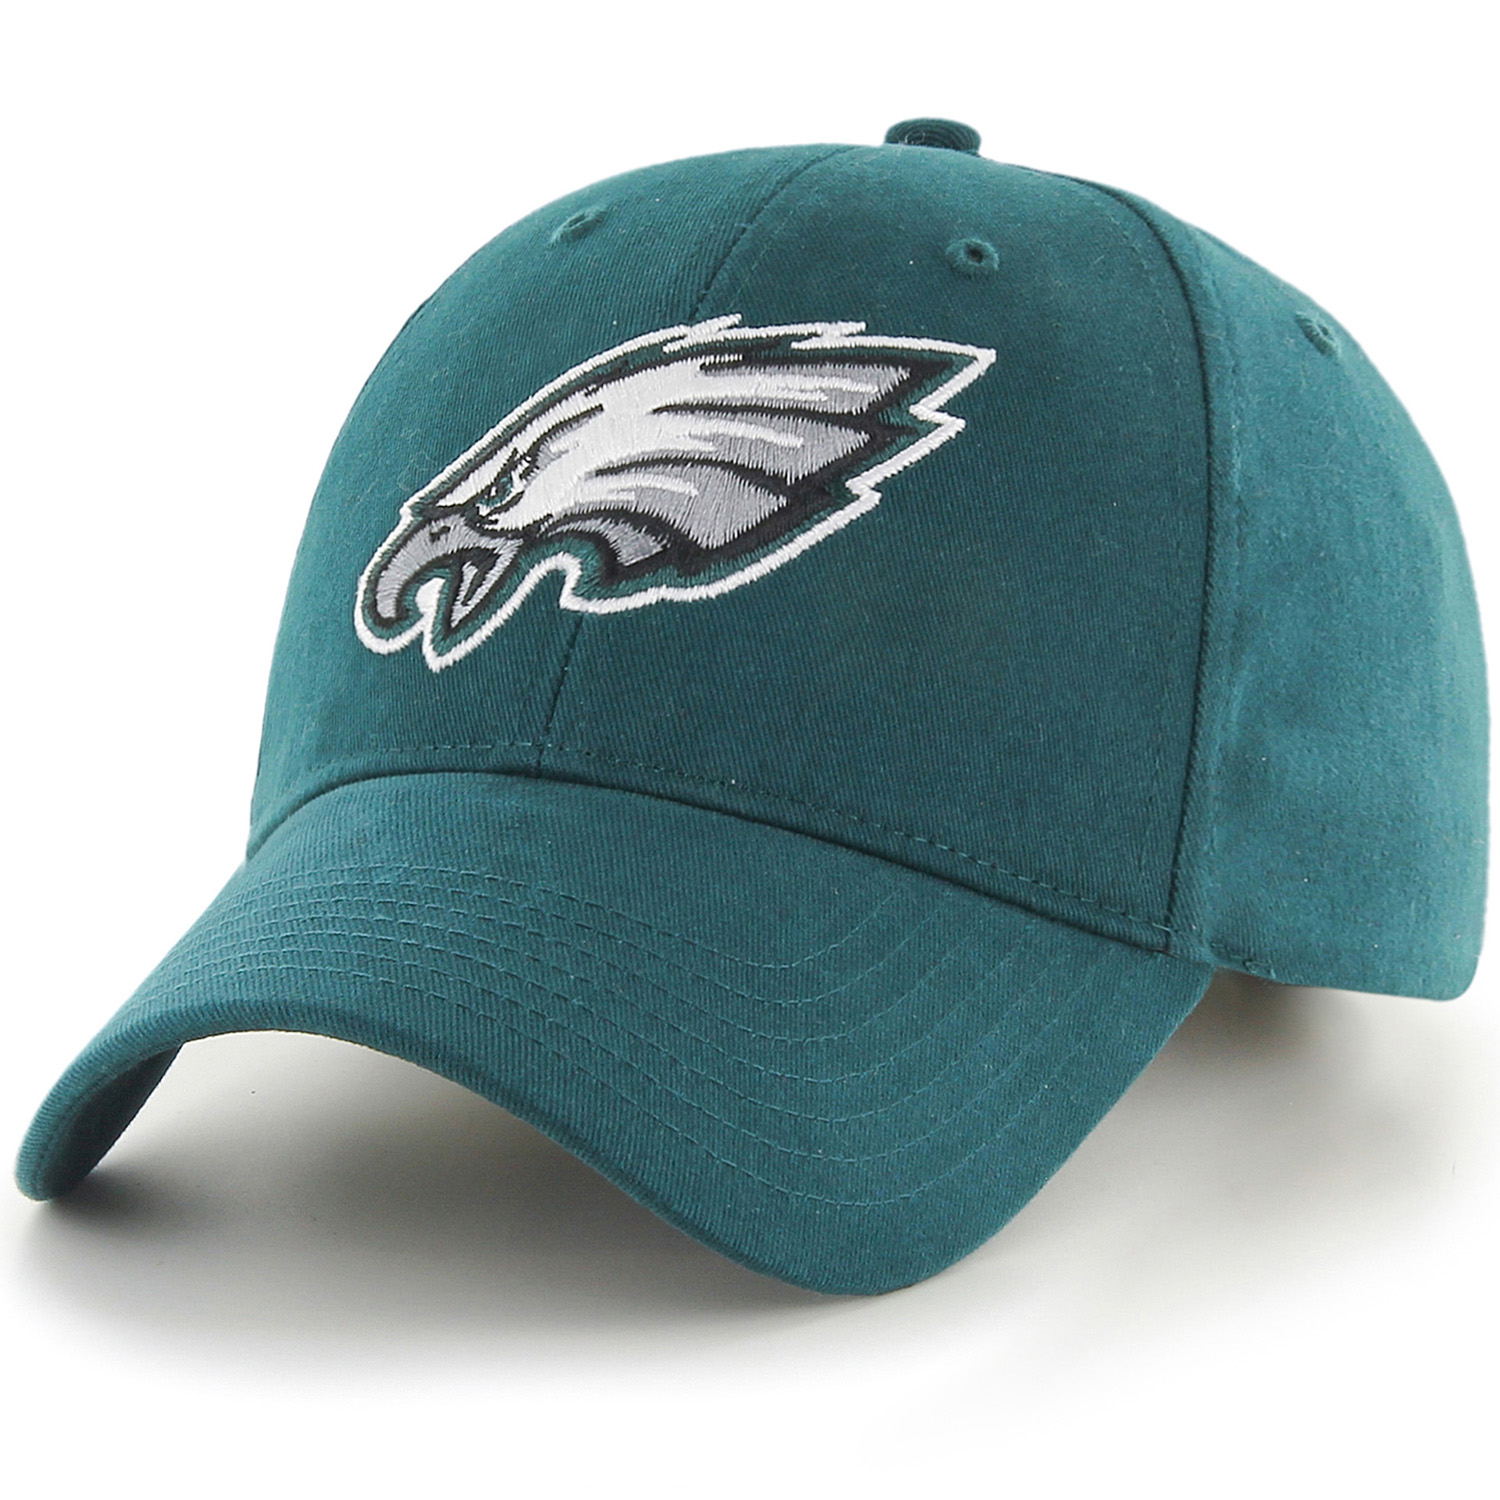 Men's Fan Favorite Green Philadelphia Eagles Mass Basic Adjustable Hat - OSFA